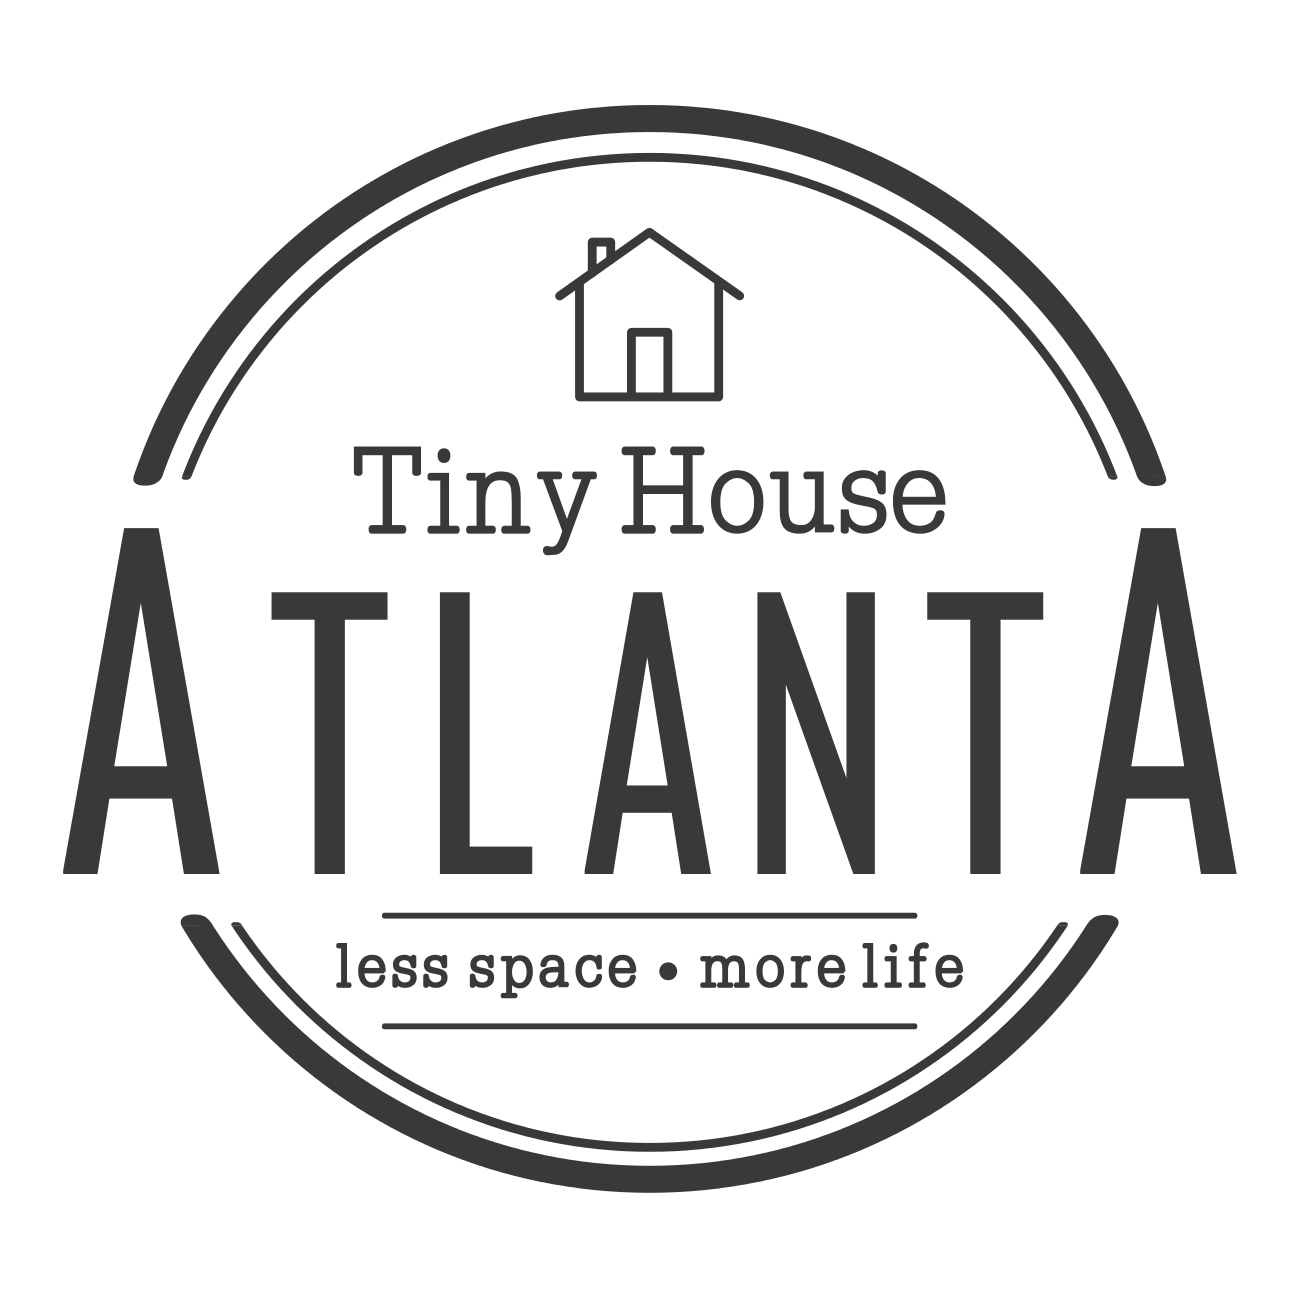 Tiny House Atlanta